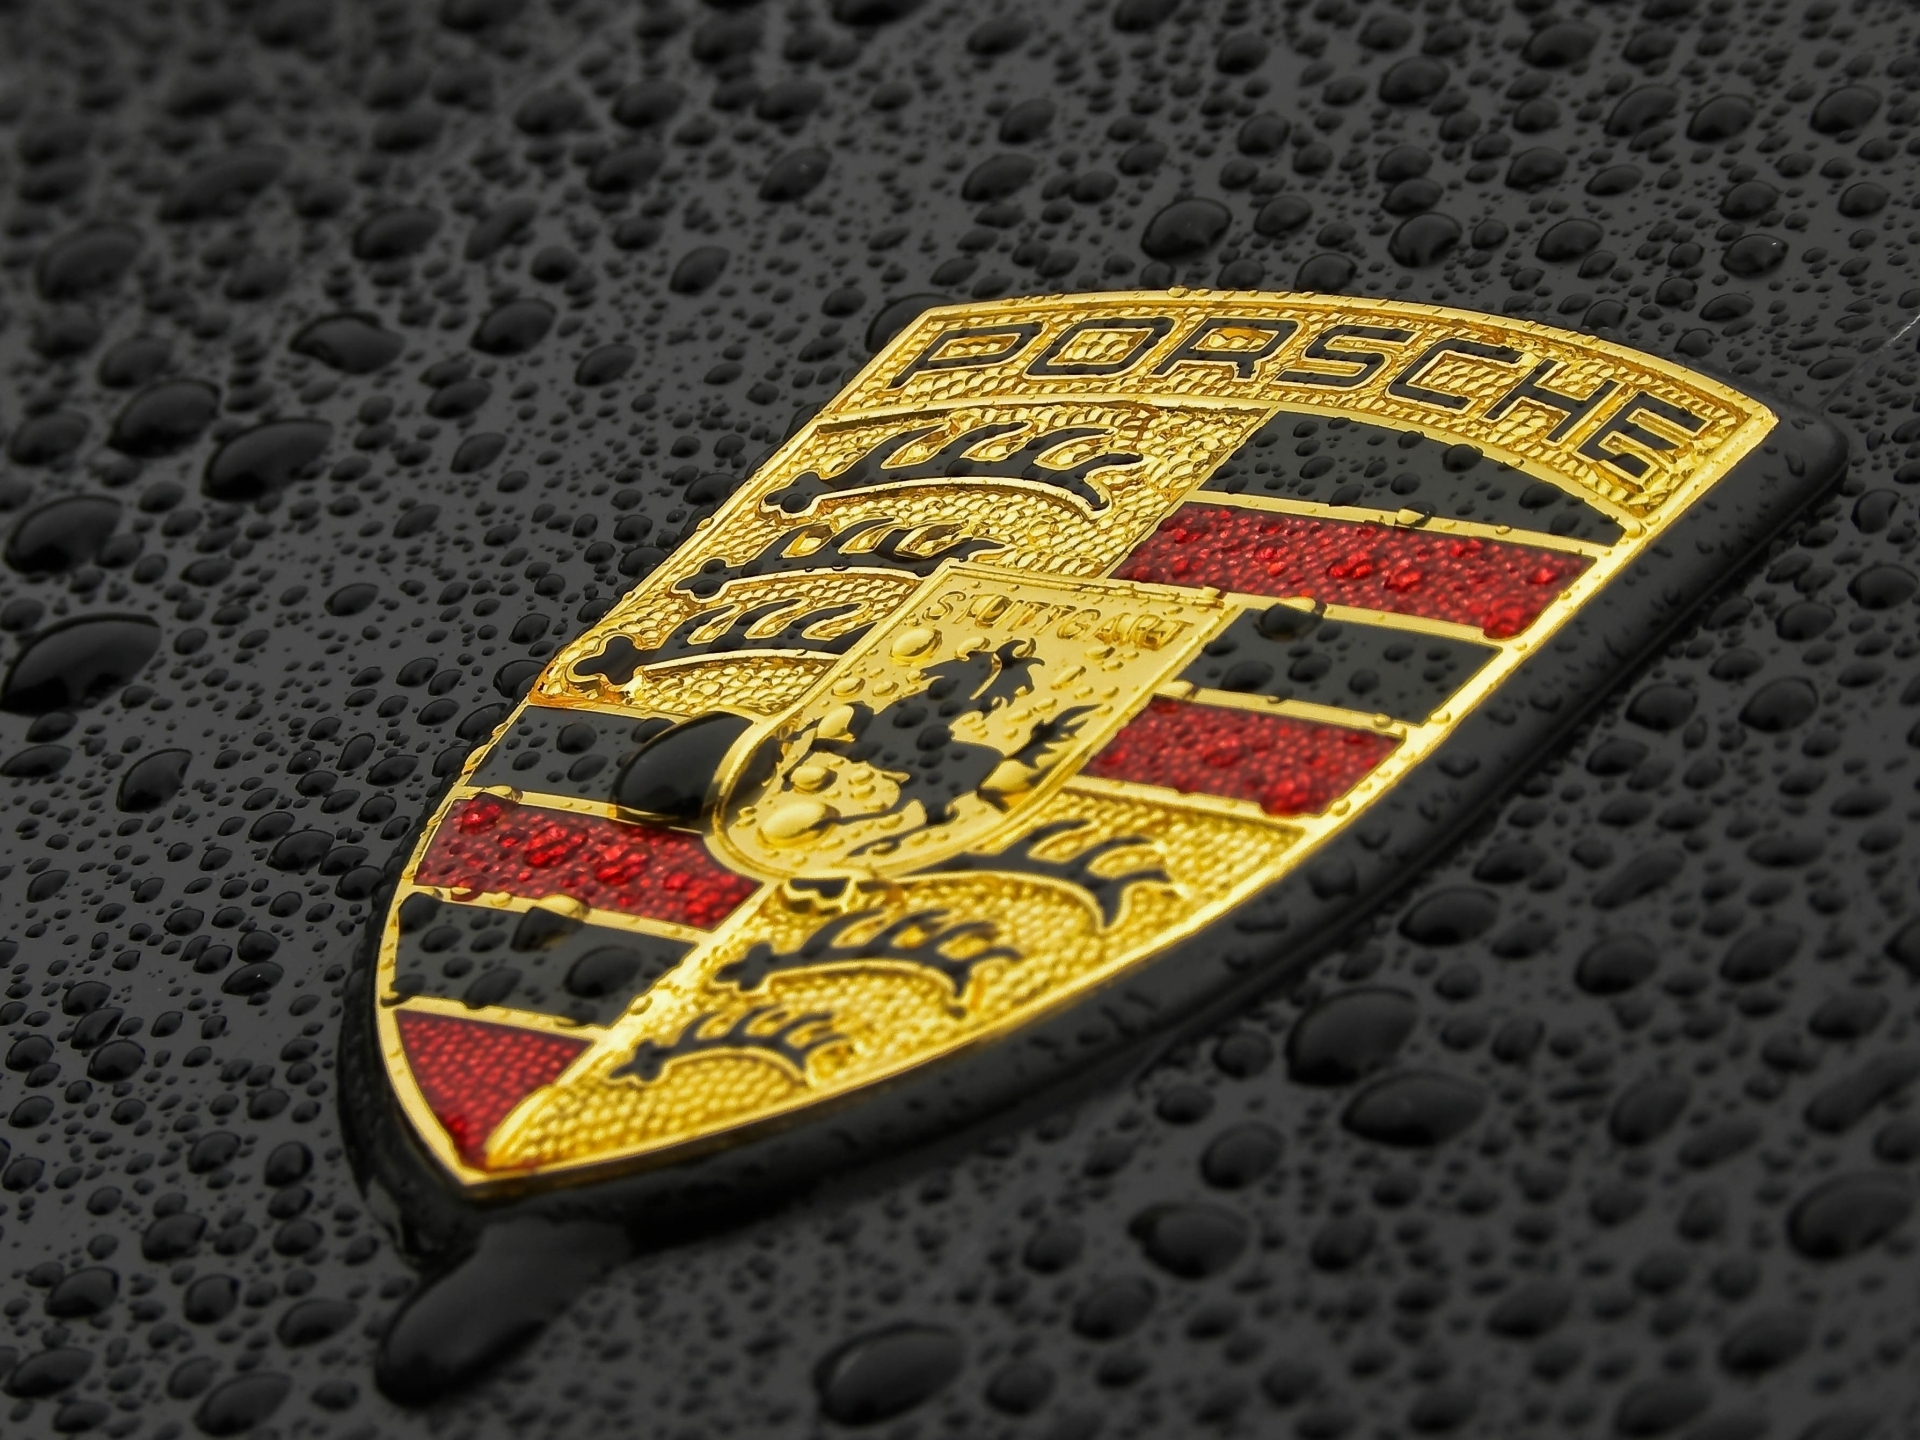 porsche logo wallpaper 1920x1440 - Porsche Logo Wallpaper Iphone